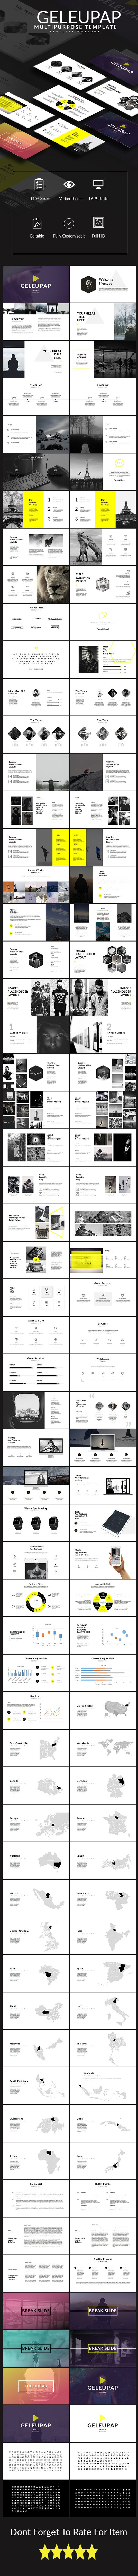 Geleupap Multipurpose Template #powerpoint #pptx #smart #simple • Download ➝ https://graphicriver.net/item/geleupap-multipurpose-template/18700023?ref=pxcr